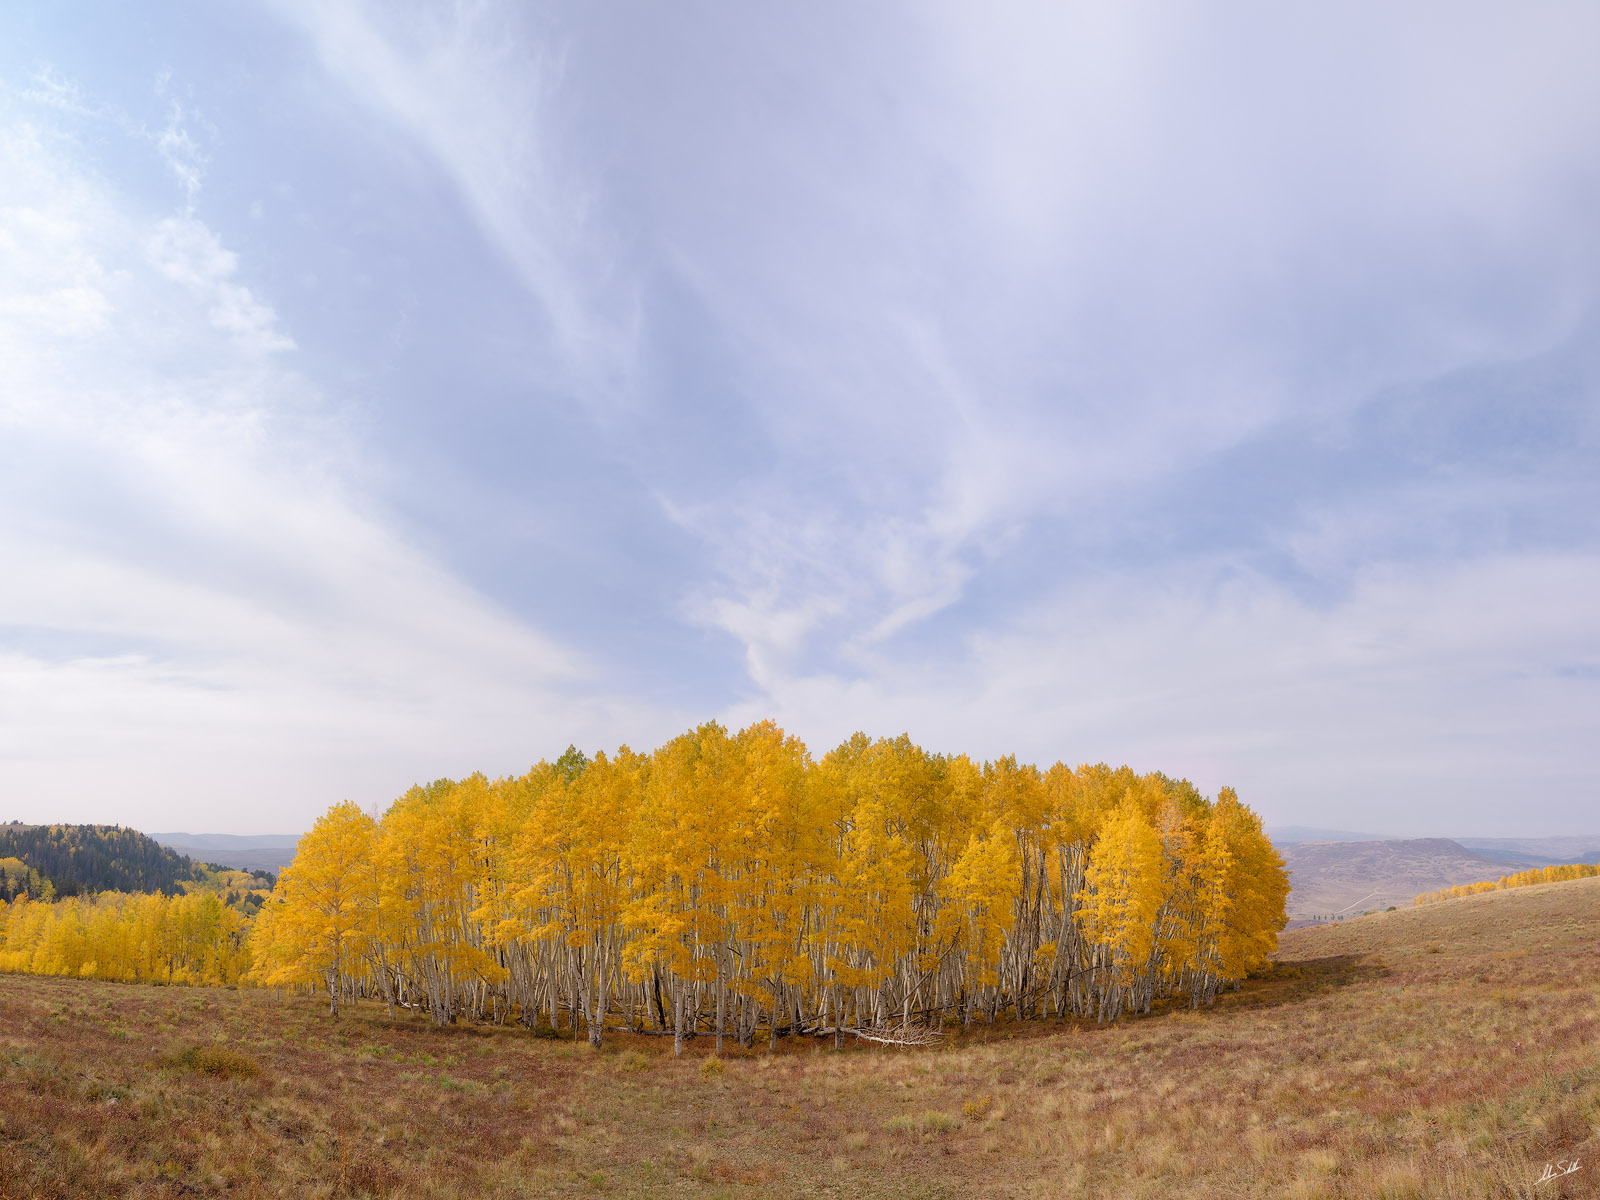 A stand of aspens with yellow leaves during fall color. From Last Dollar Road in the San Juan Mountains near Telluride, Colorado...